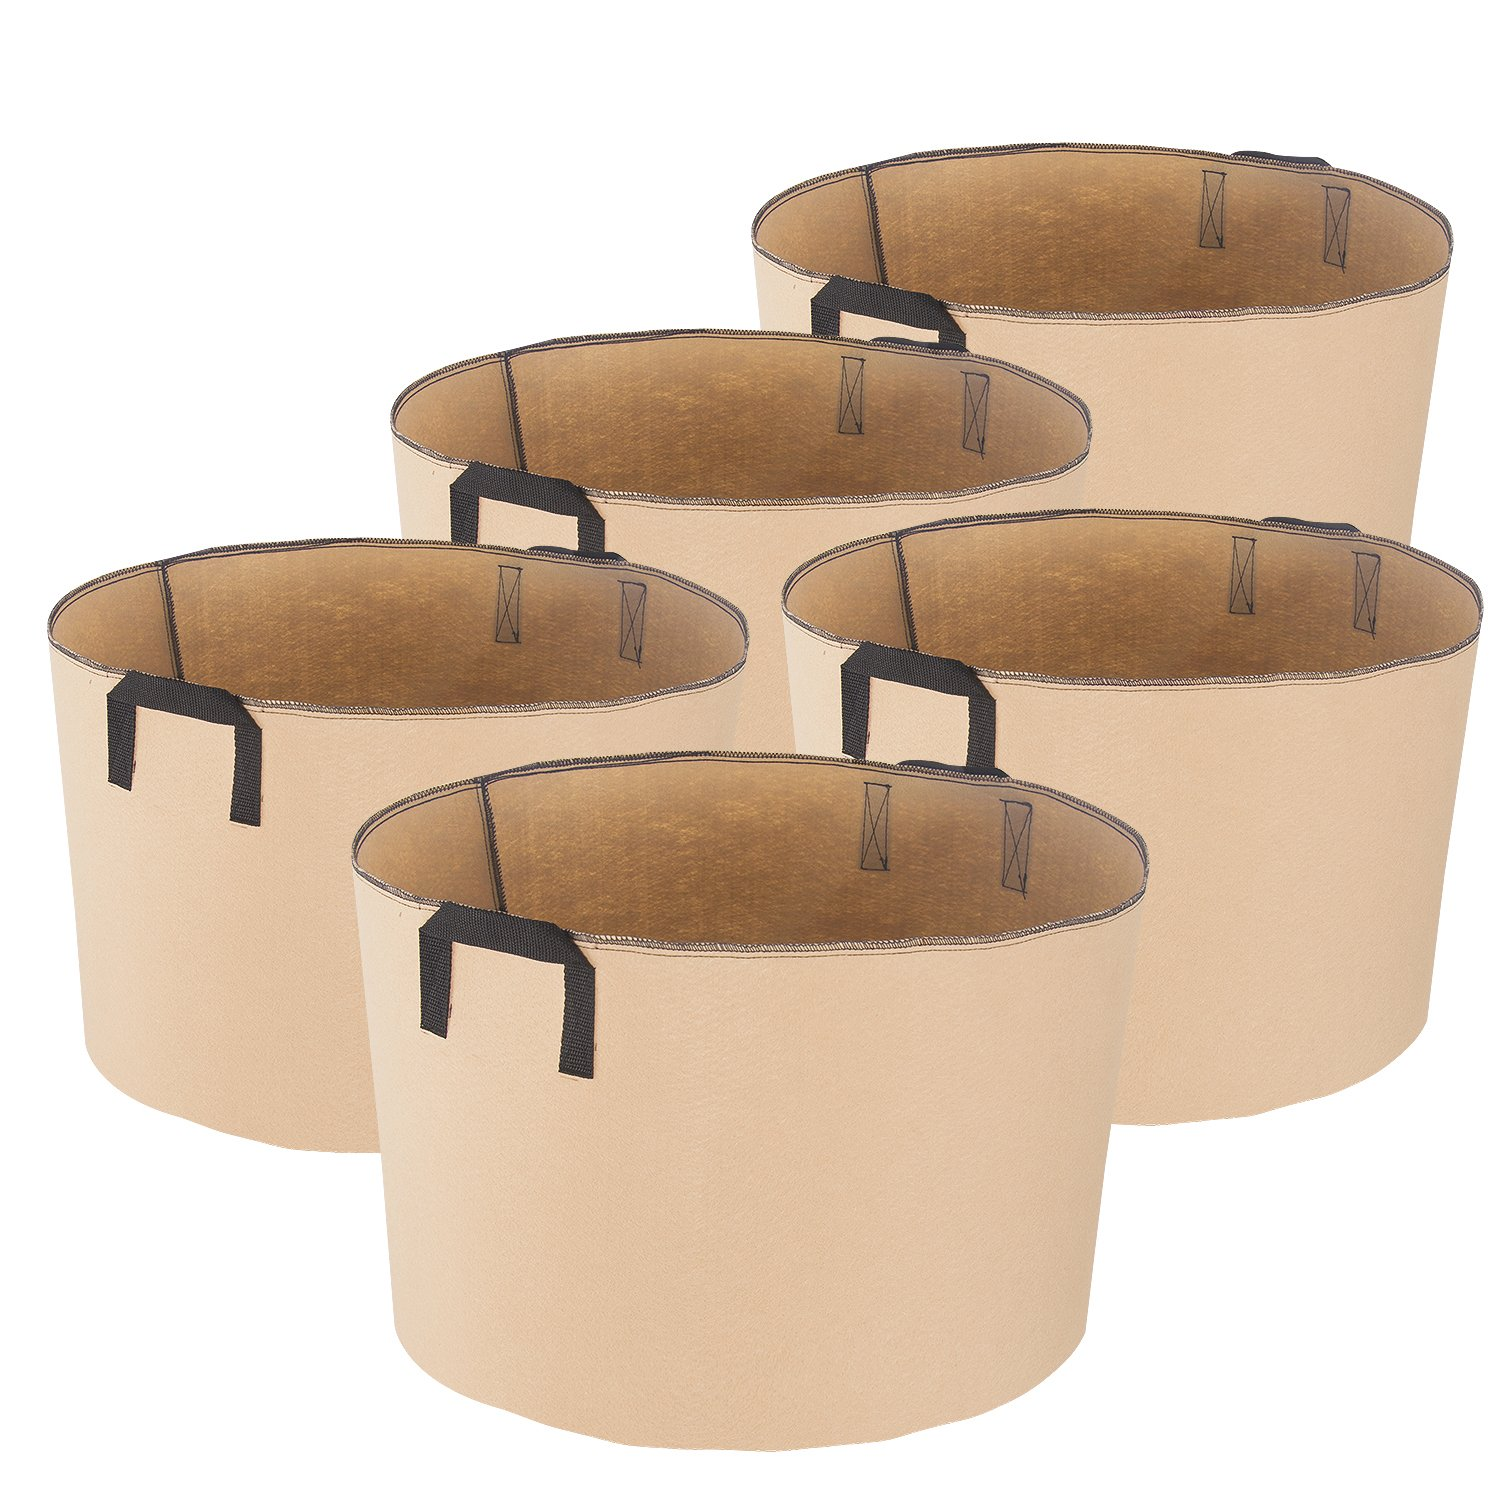 iPower 20-Gallon 5-Pack Grow Bags Fabric Aeration Pots Container with Strap Handles for Nursery Garden and Planting Tan